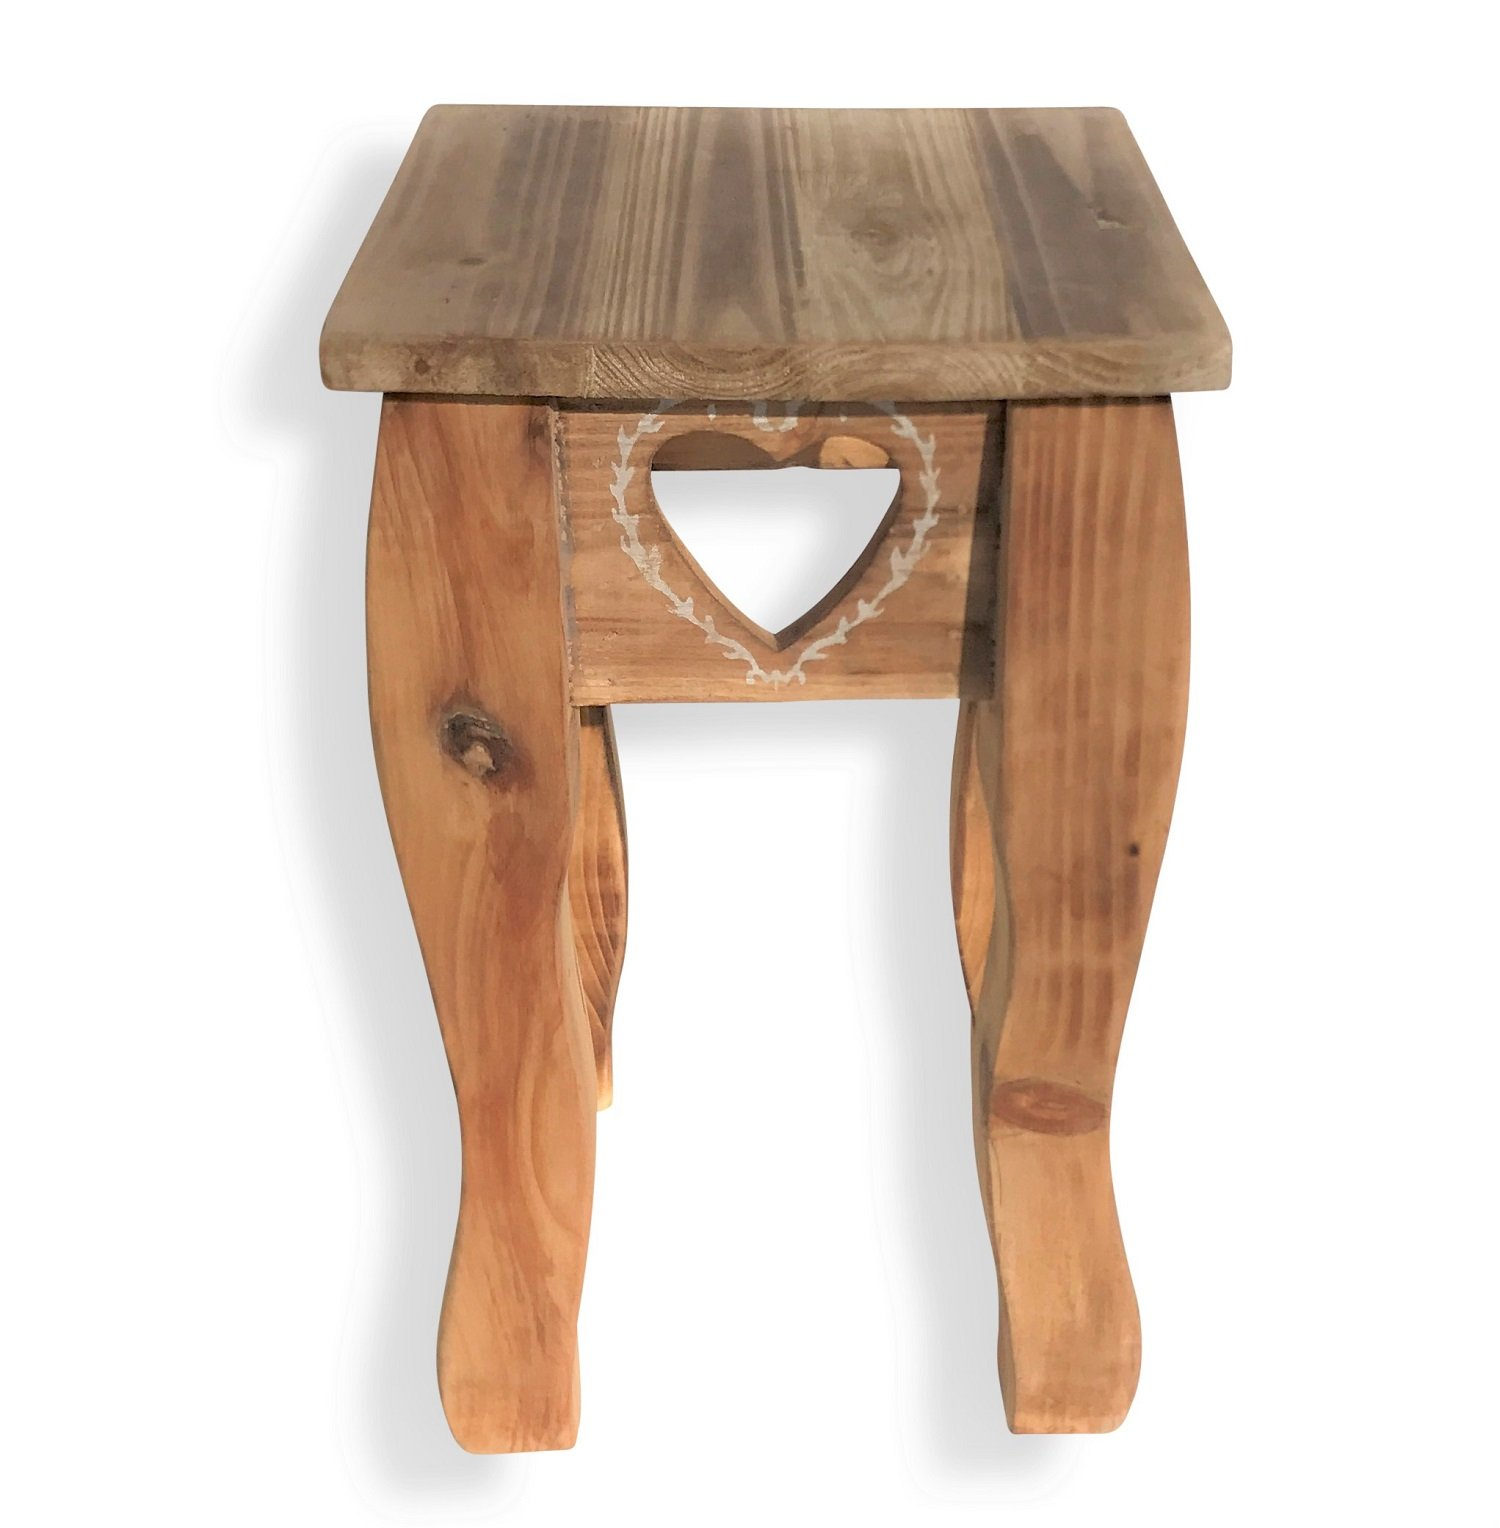 Whole House Worlds The Farmhouse Country Style Table, Side, Accent, or Occasional, Cut Out Hearts, Handcrafted of Sustainable Wood, Natural Color, Rustic White Accents, 13 Inches High, By